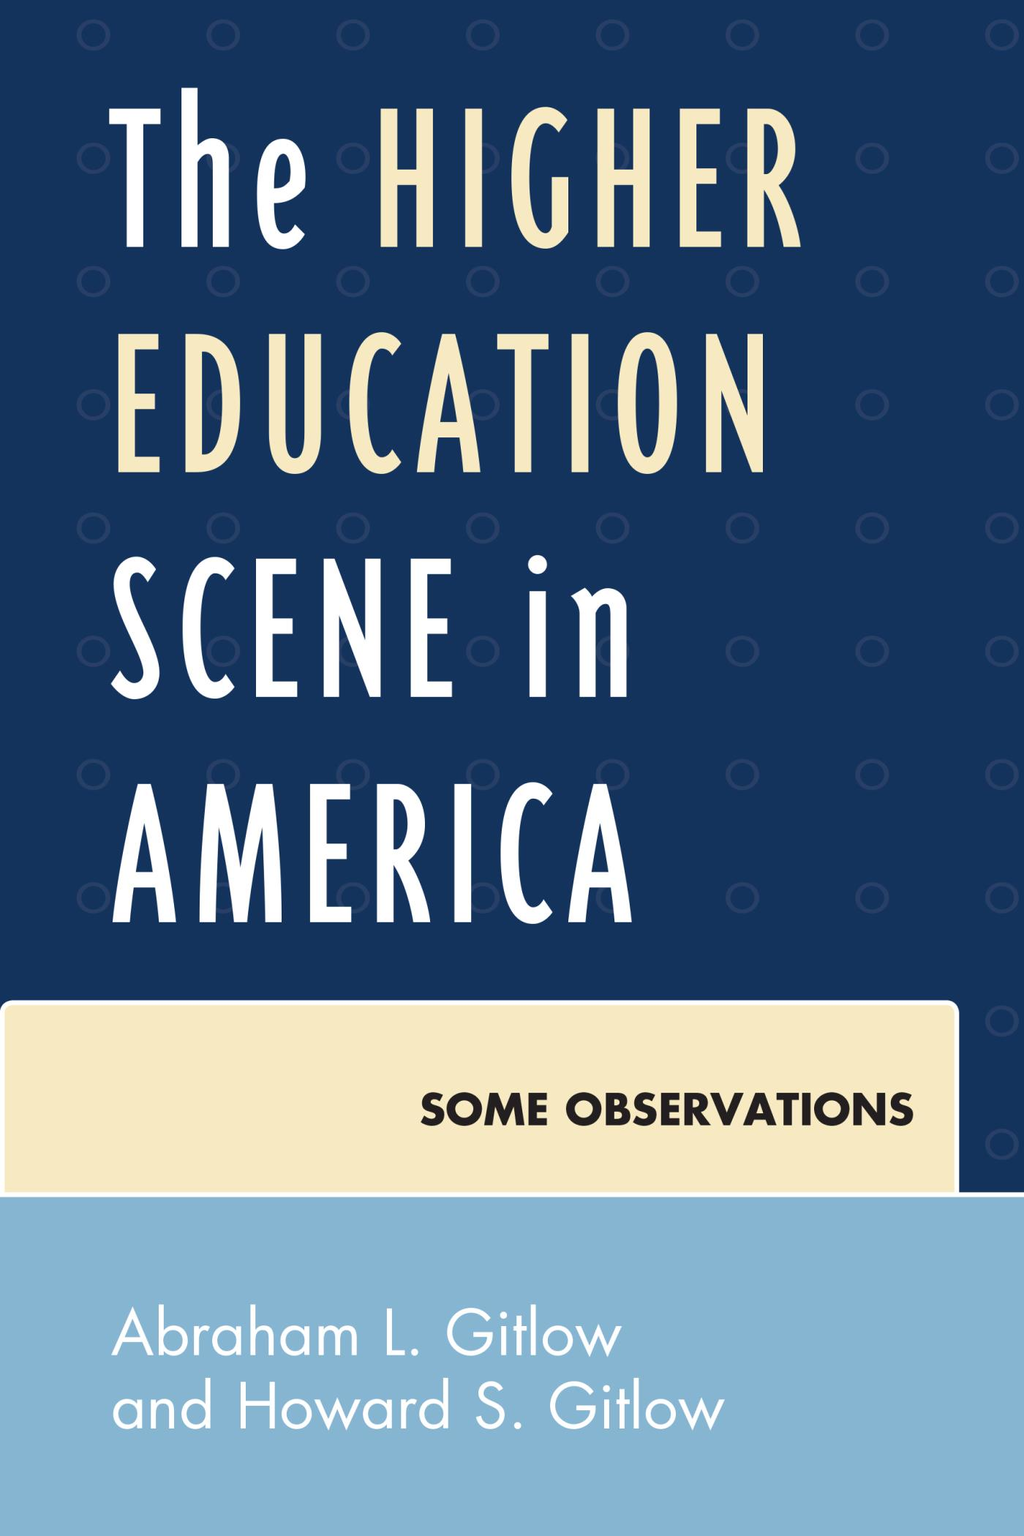 The Higher Education Scene in America Some Observations